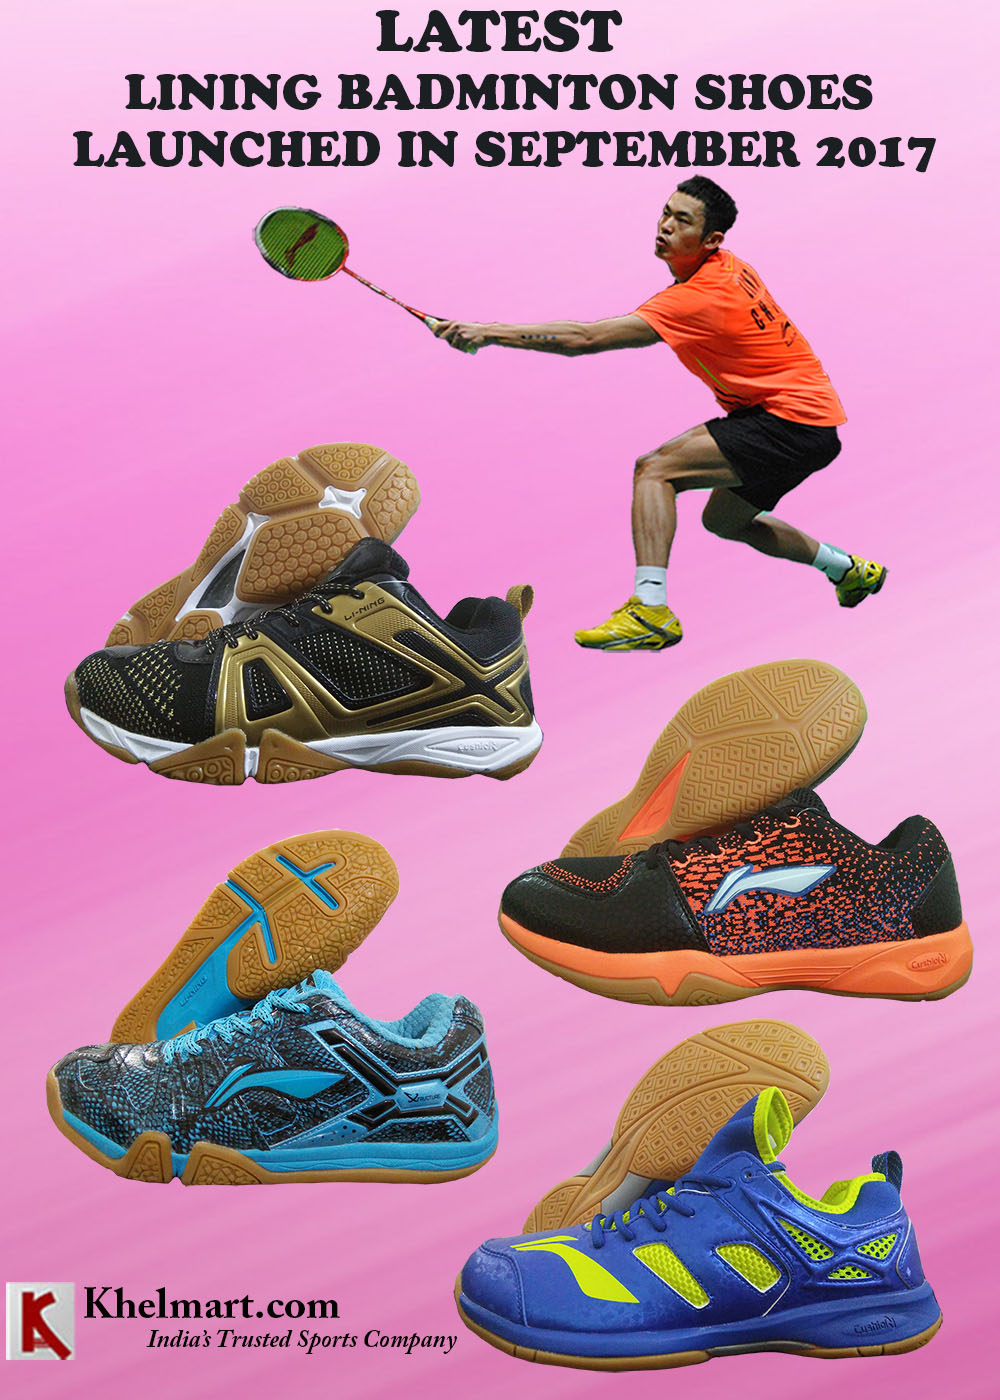 LATEST LINING BADMINTON SHOES LAUNCHED IN SEPTEMBER 2017